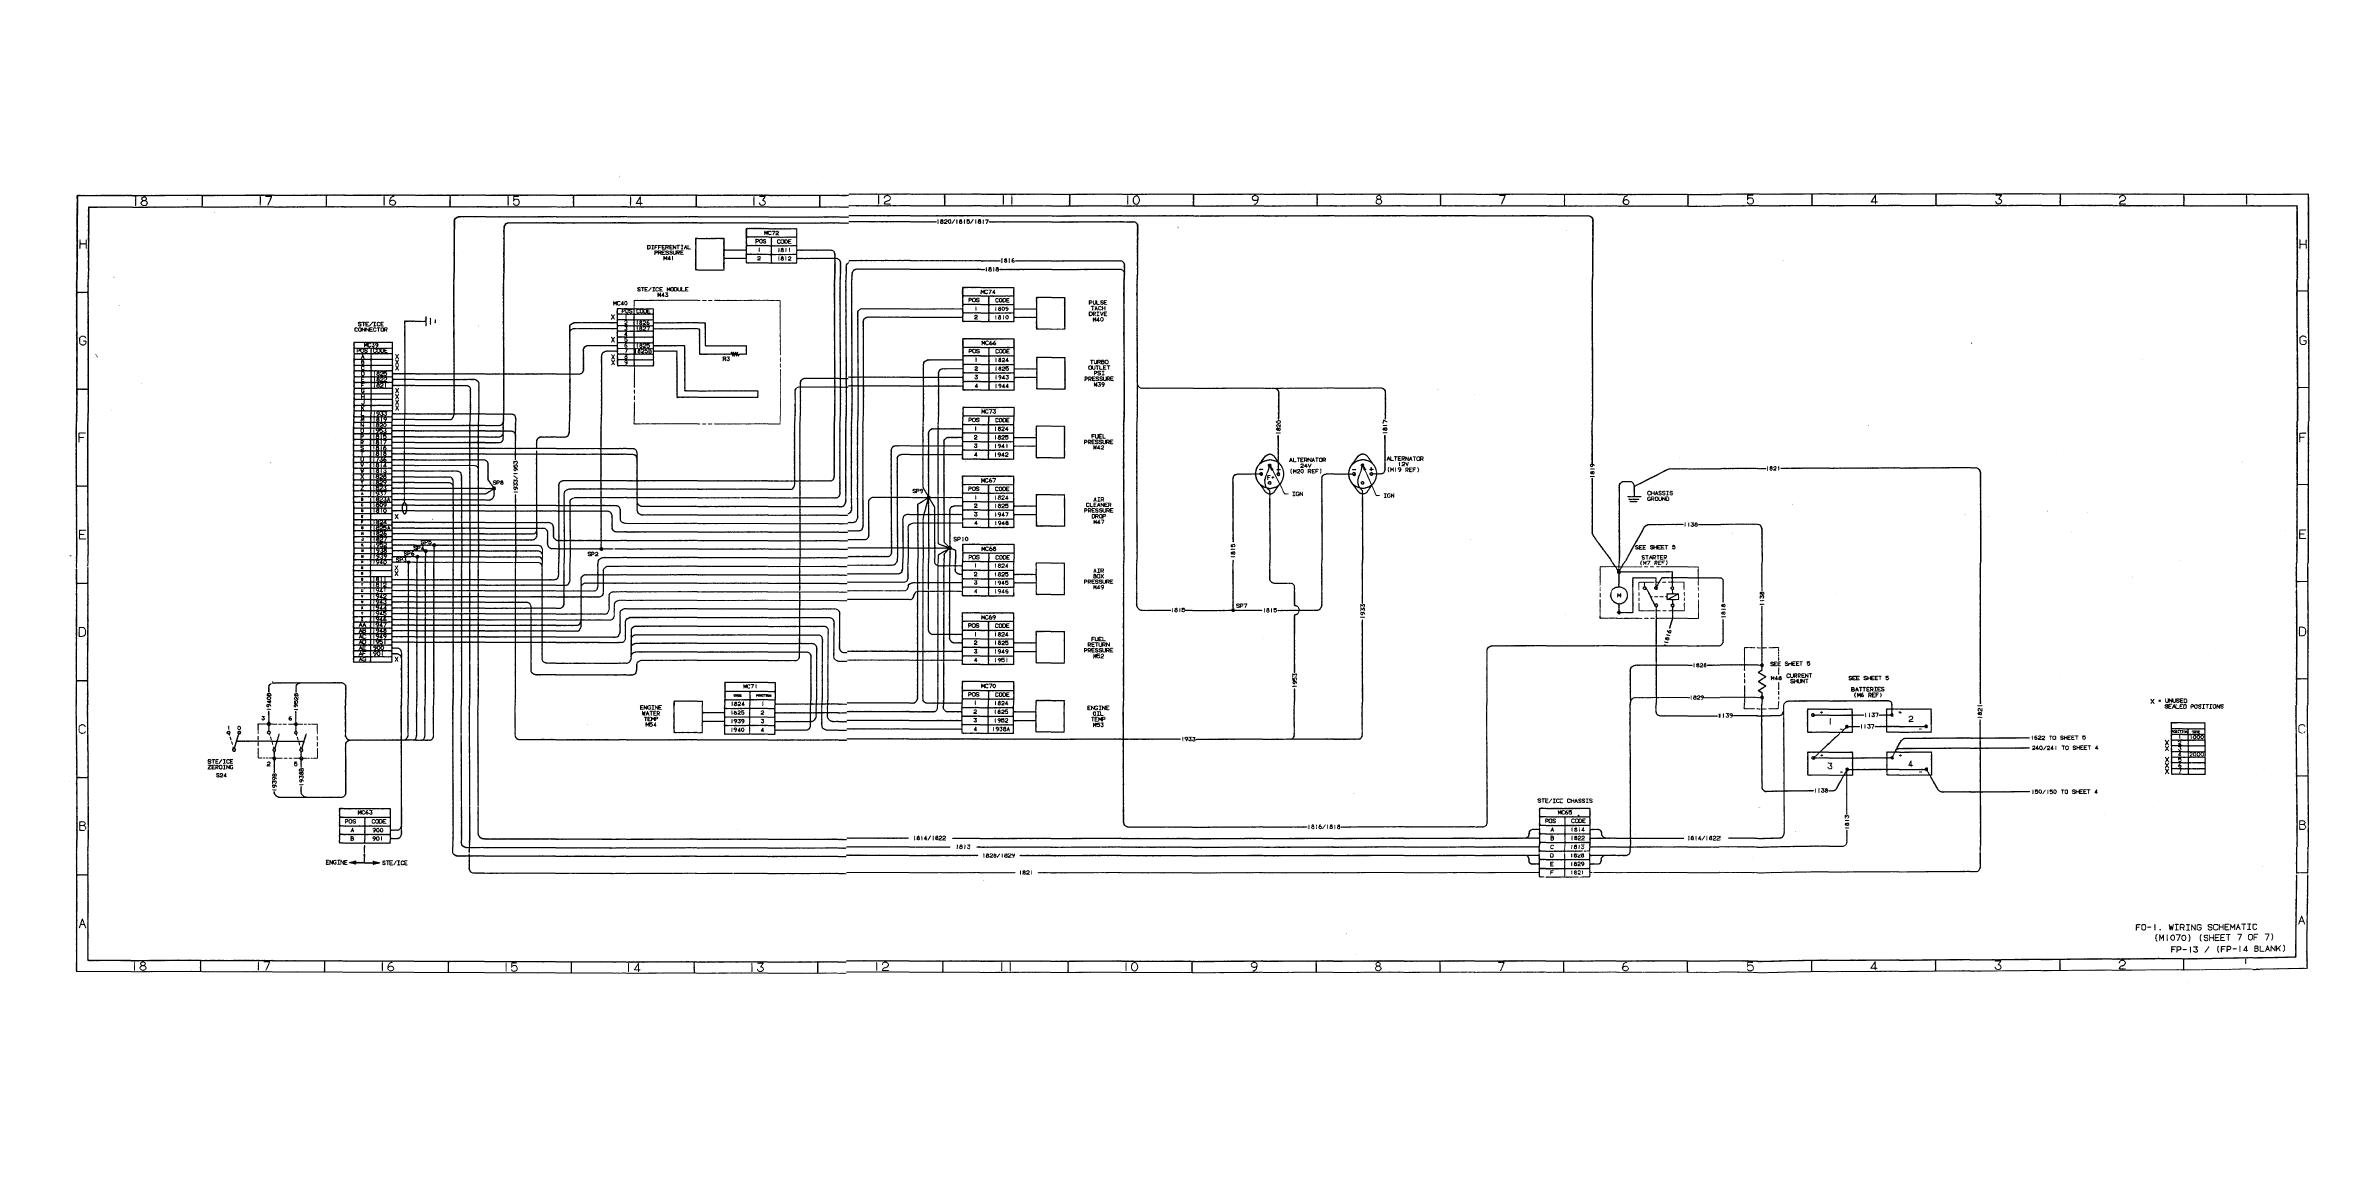 FO-2. AIR SCHEMATIC (M1070) (SHEET 1 OF 2)